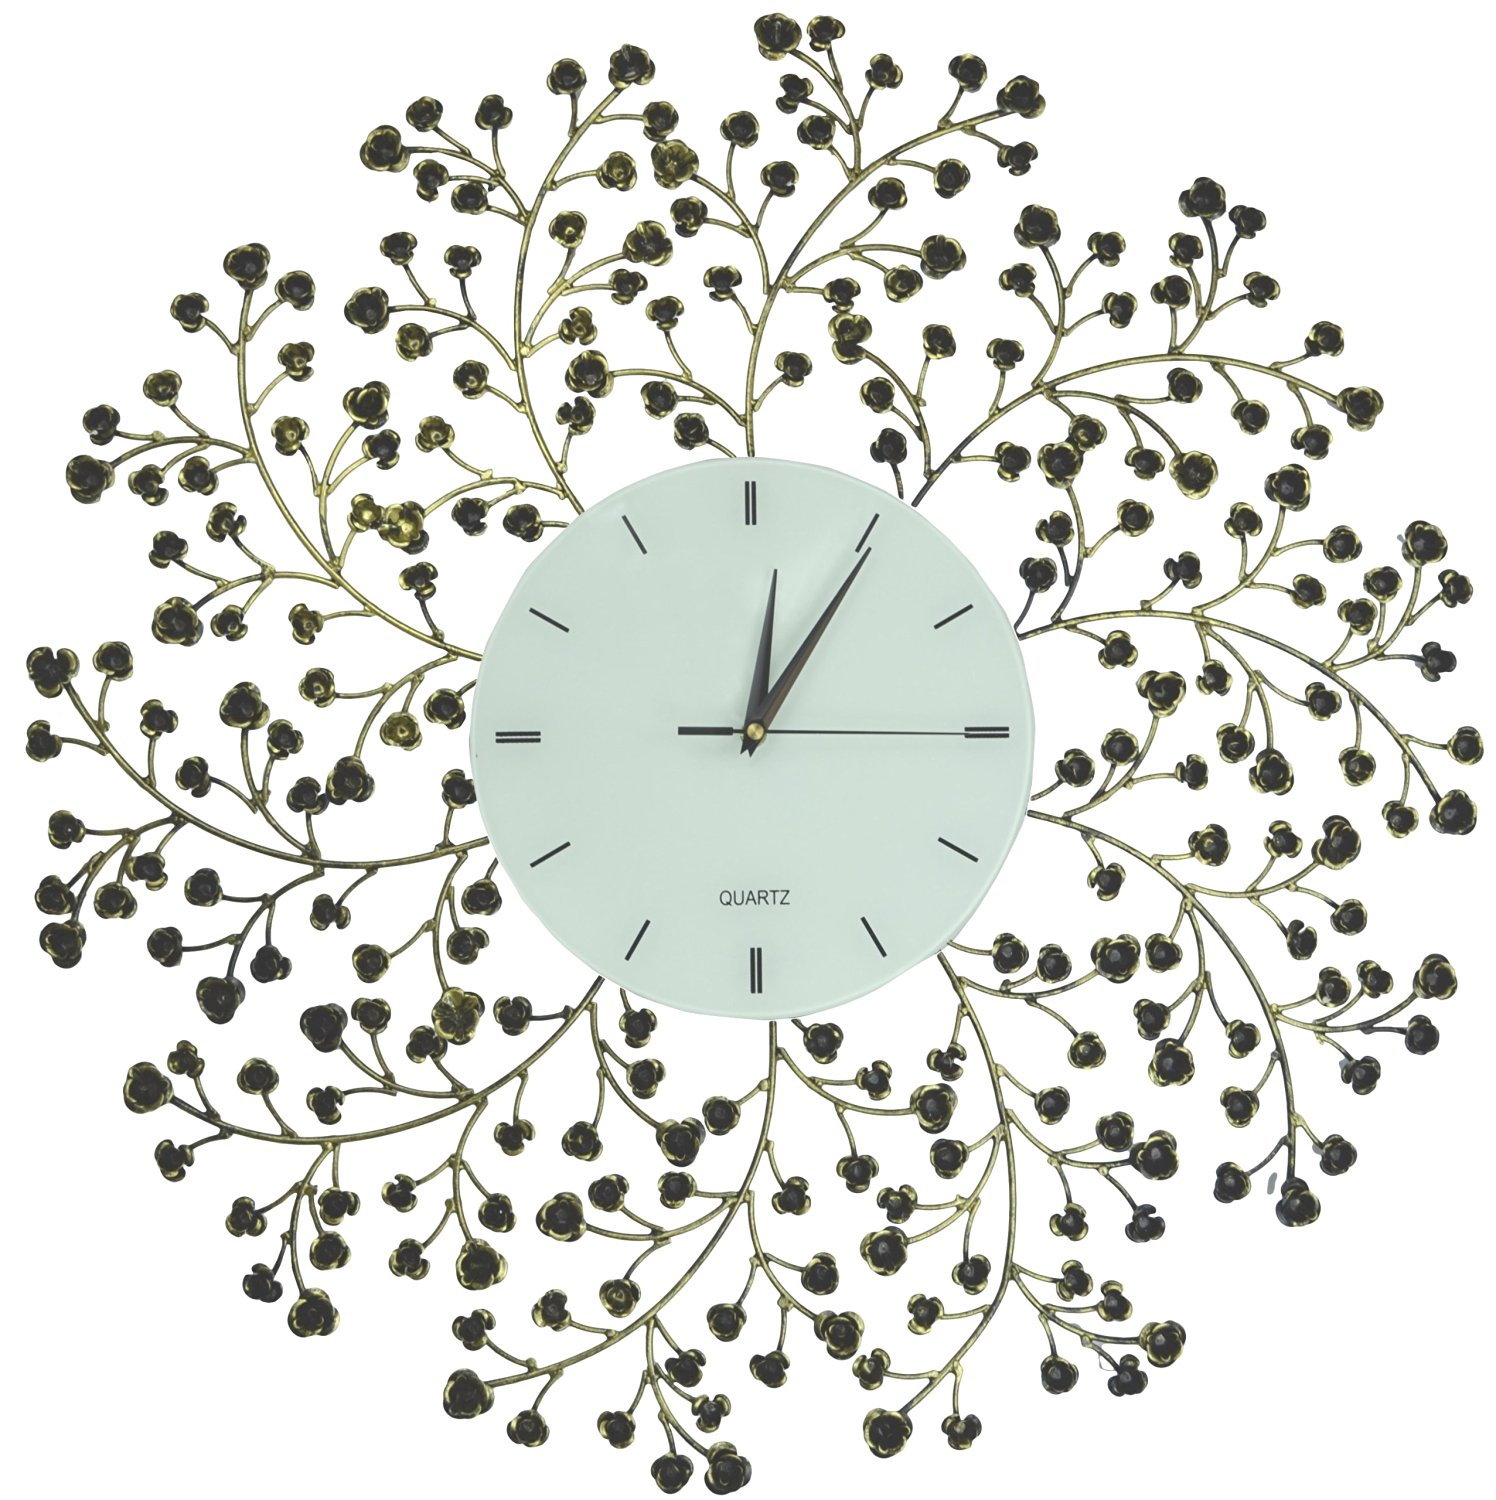 "Lulu Decor, 24.50"" Spring Blooms Metal Wall Clock with White Lines Dial, Decorative Clock for Living Room, Bedroom, Office Space"